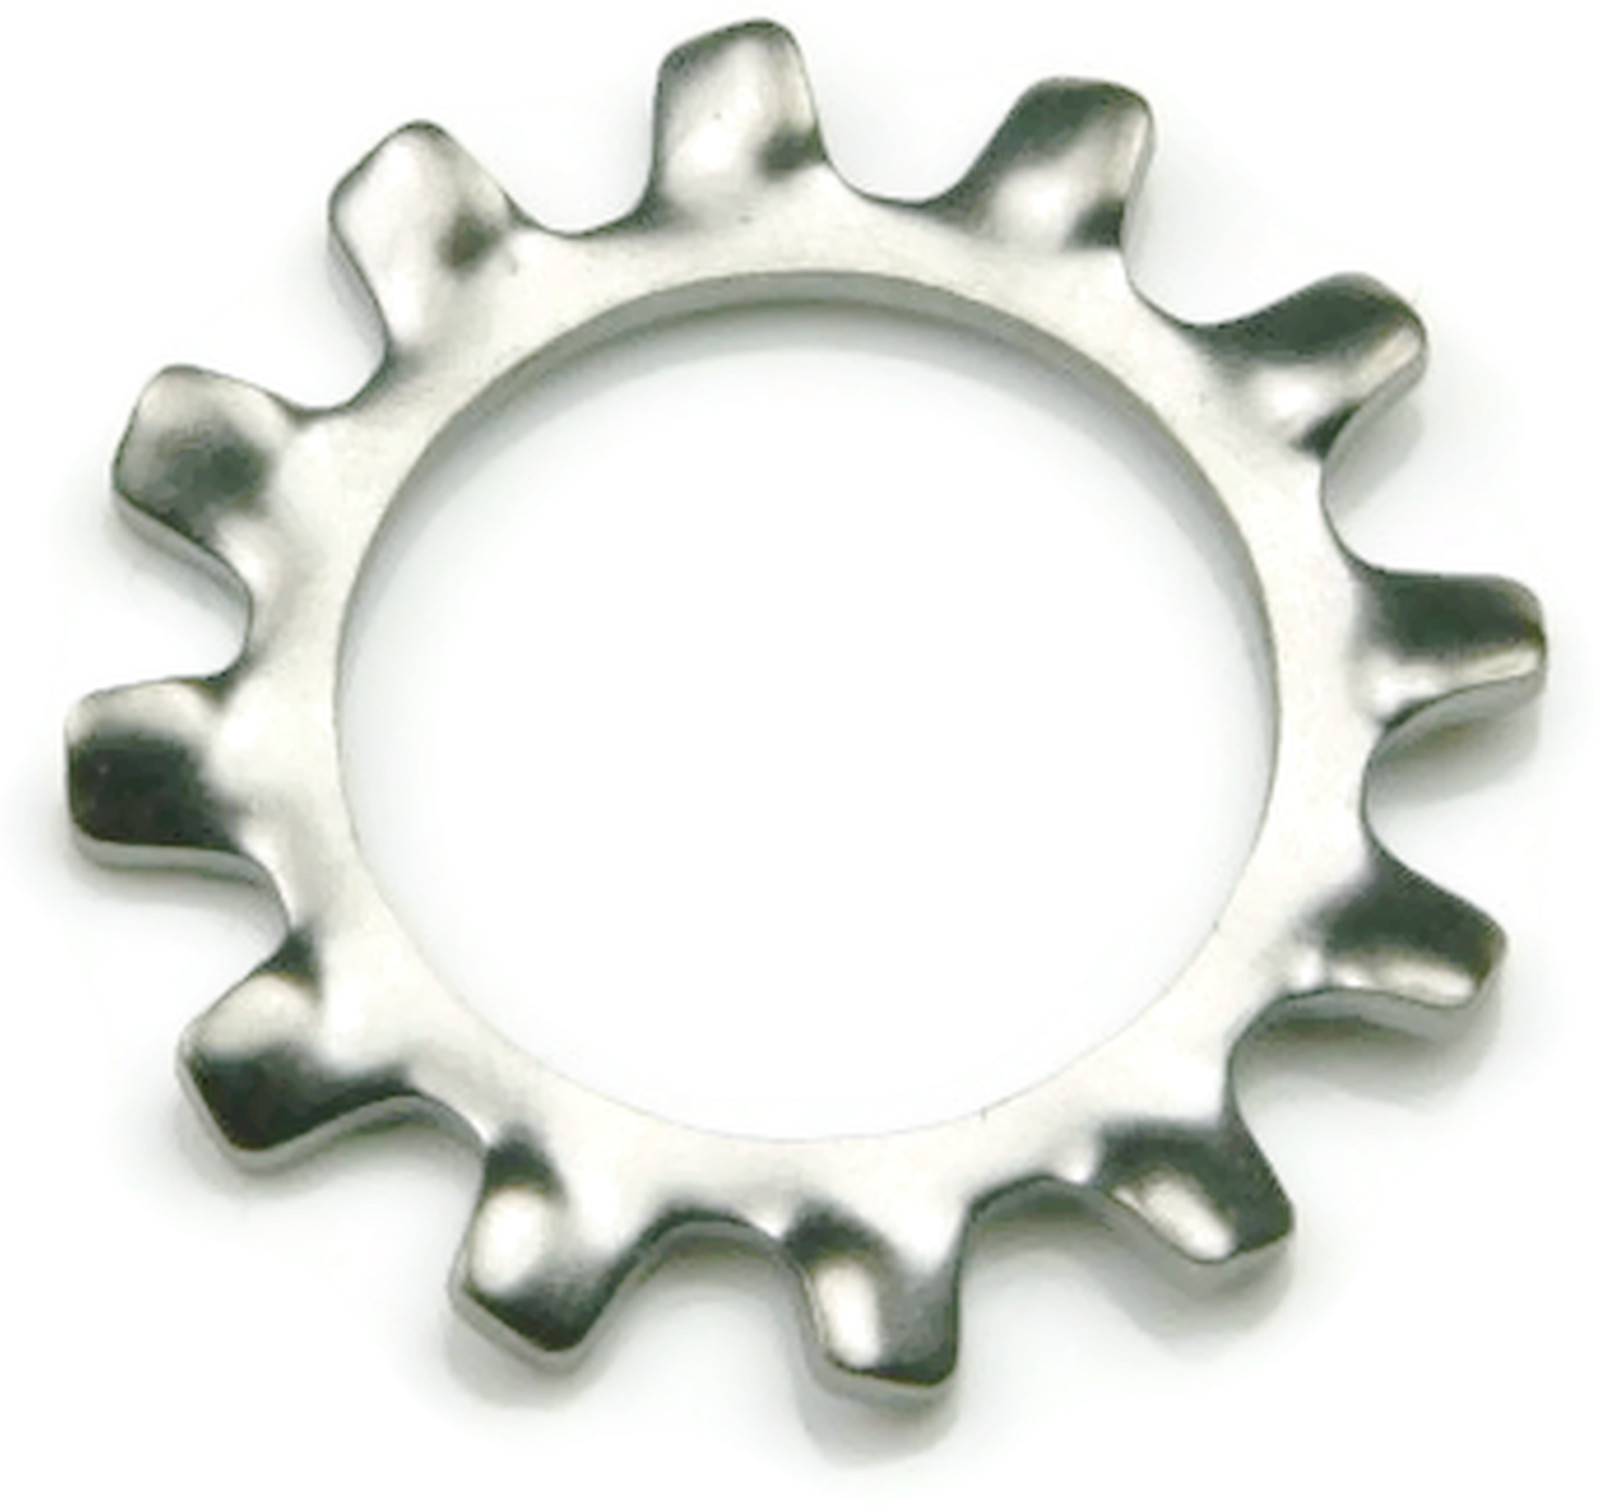 M10 External Tooth Metric Lock Washer A2 Stainless Steel -QTY 25